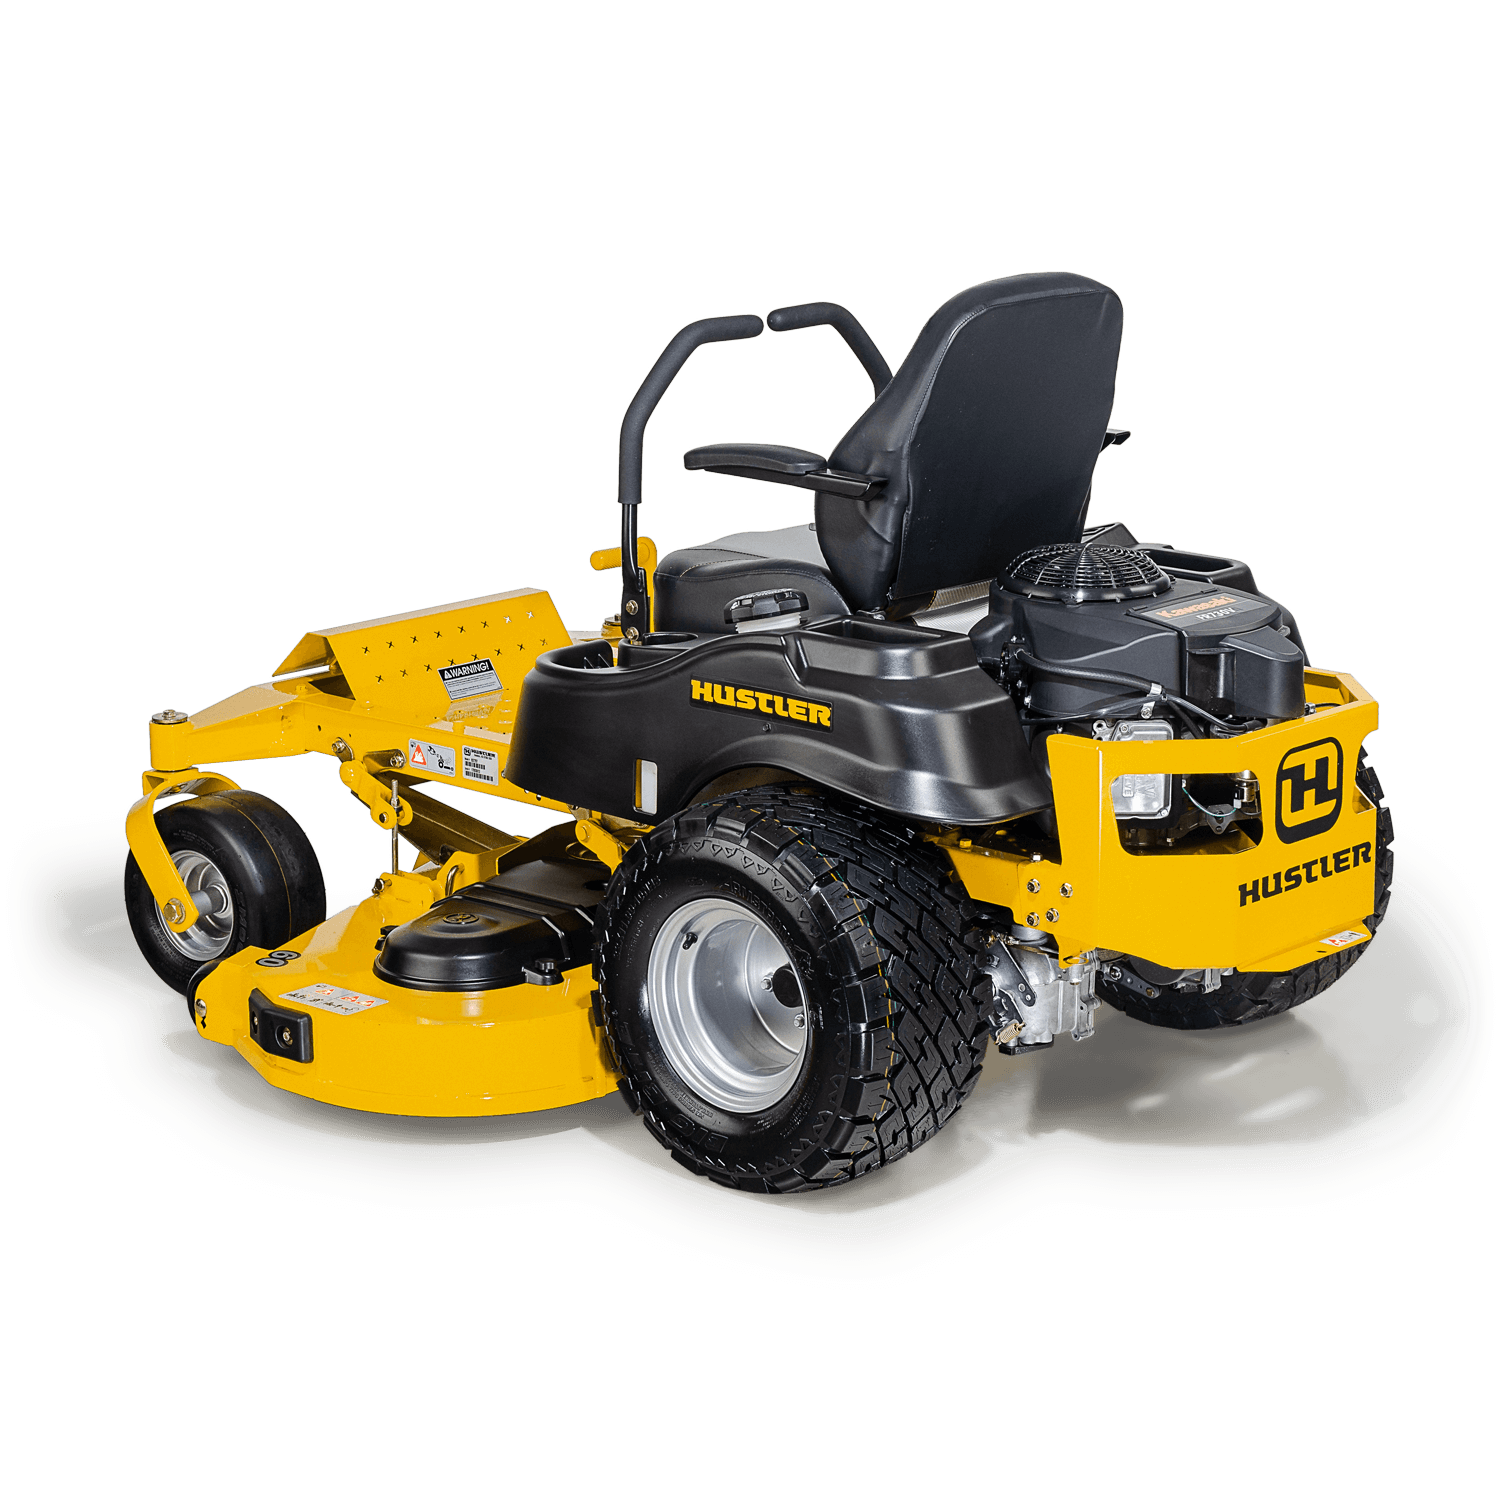 Image of rear three quarters of yellow mower showing trim edge of deck